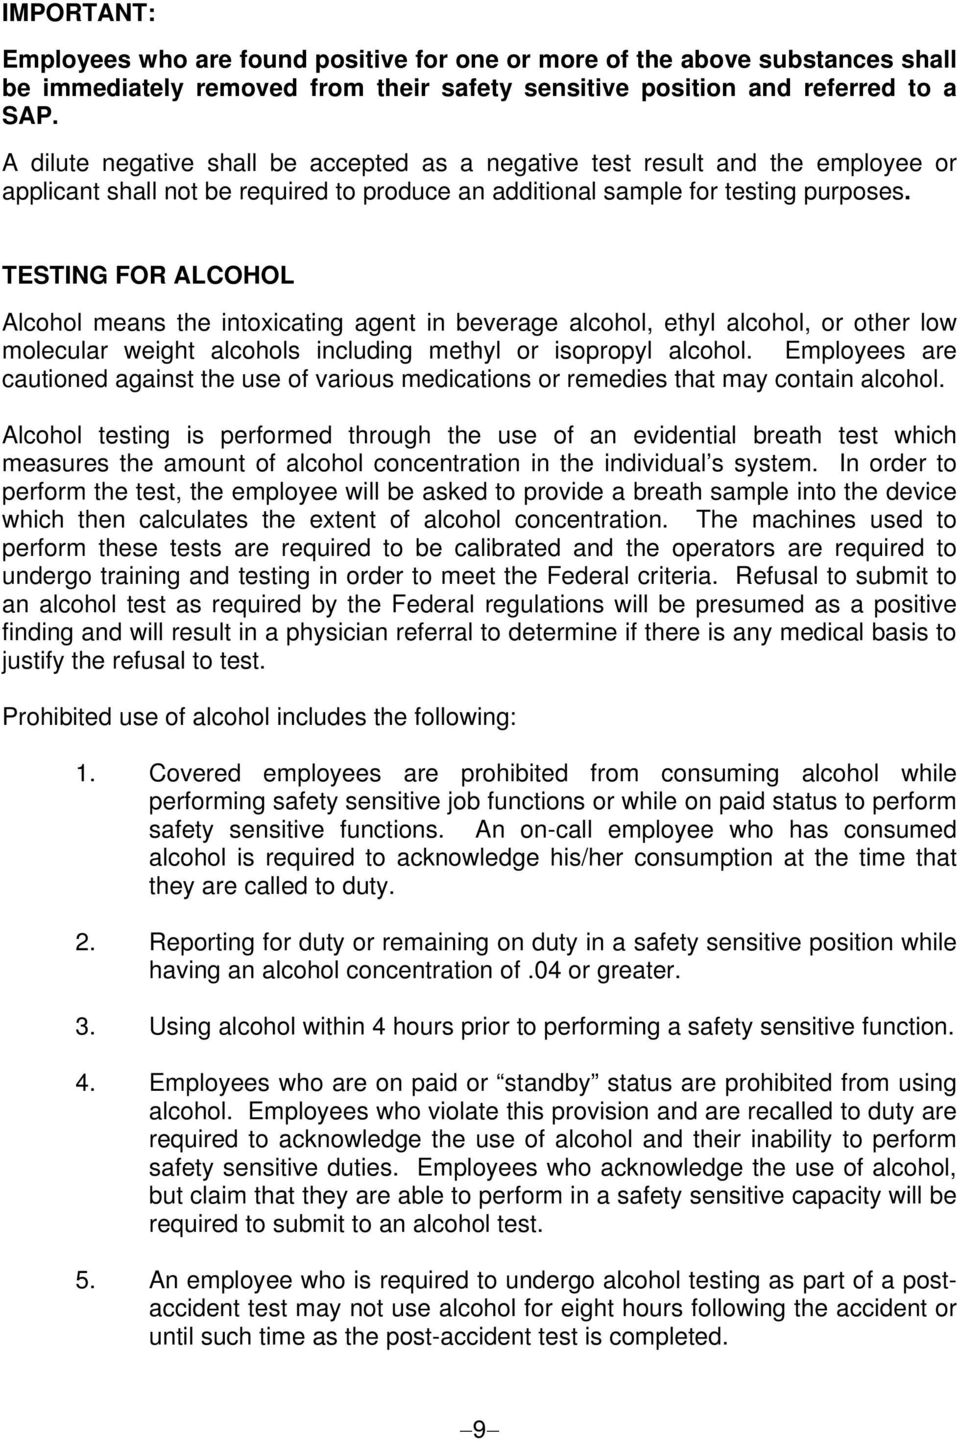 TESTING FOR ALCOHOL Alcohol means the intoxicating agent in beverage alcohol, ethyl alcohol, or other low molecular weight alcohols including methyl or isopropyl alcohol.